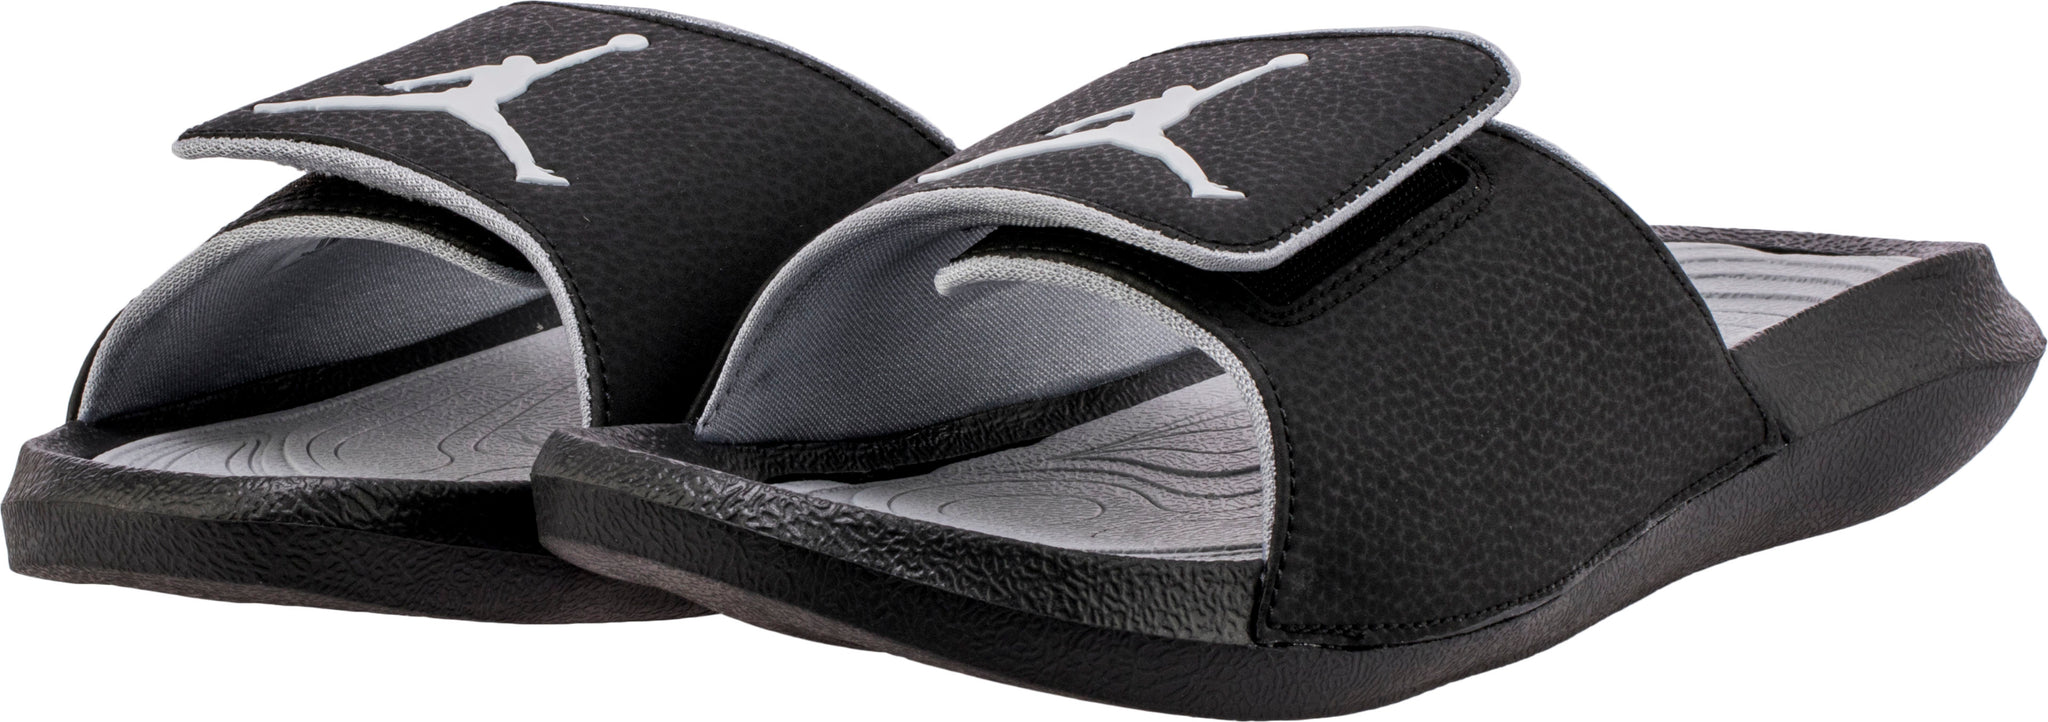 b33e6b0bd212 Nike Jordan Hydro 6 Black White Wolf Grey Men s Sandals Size 14 ...